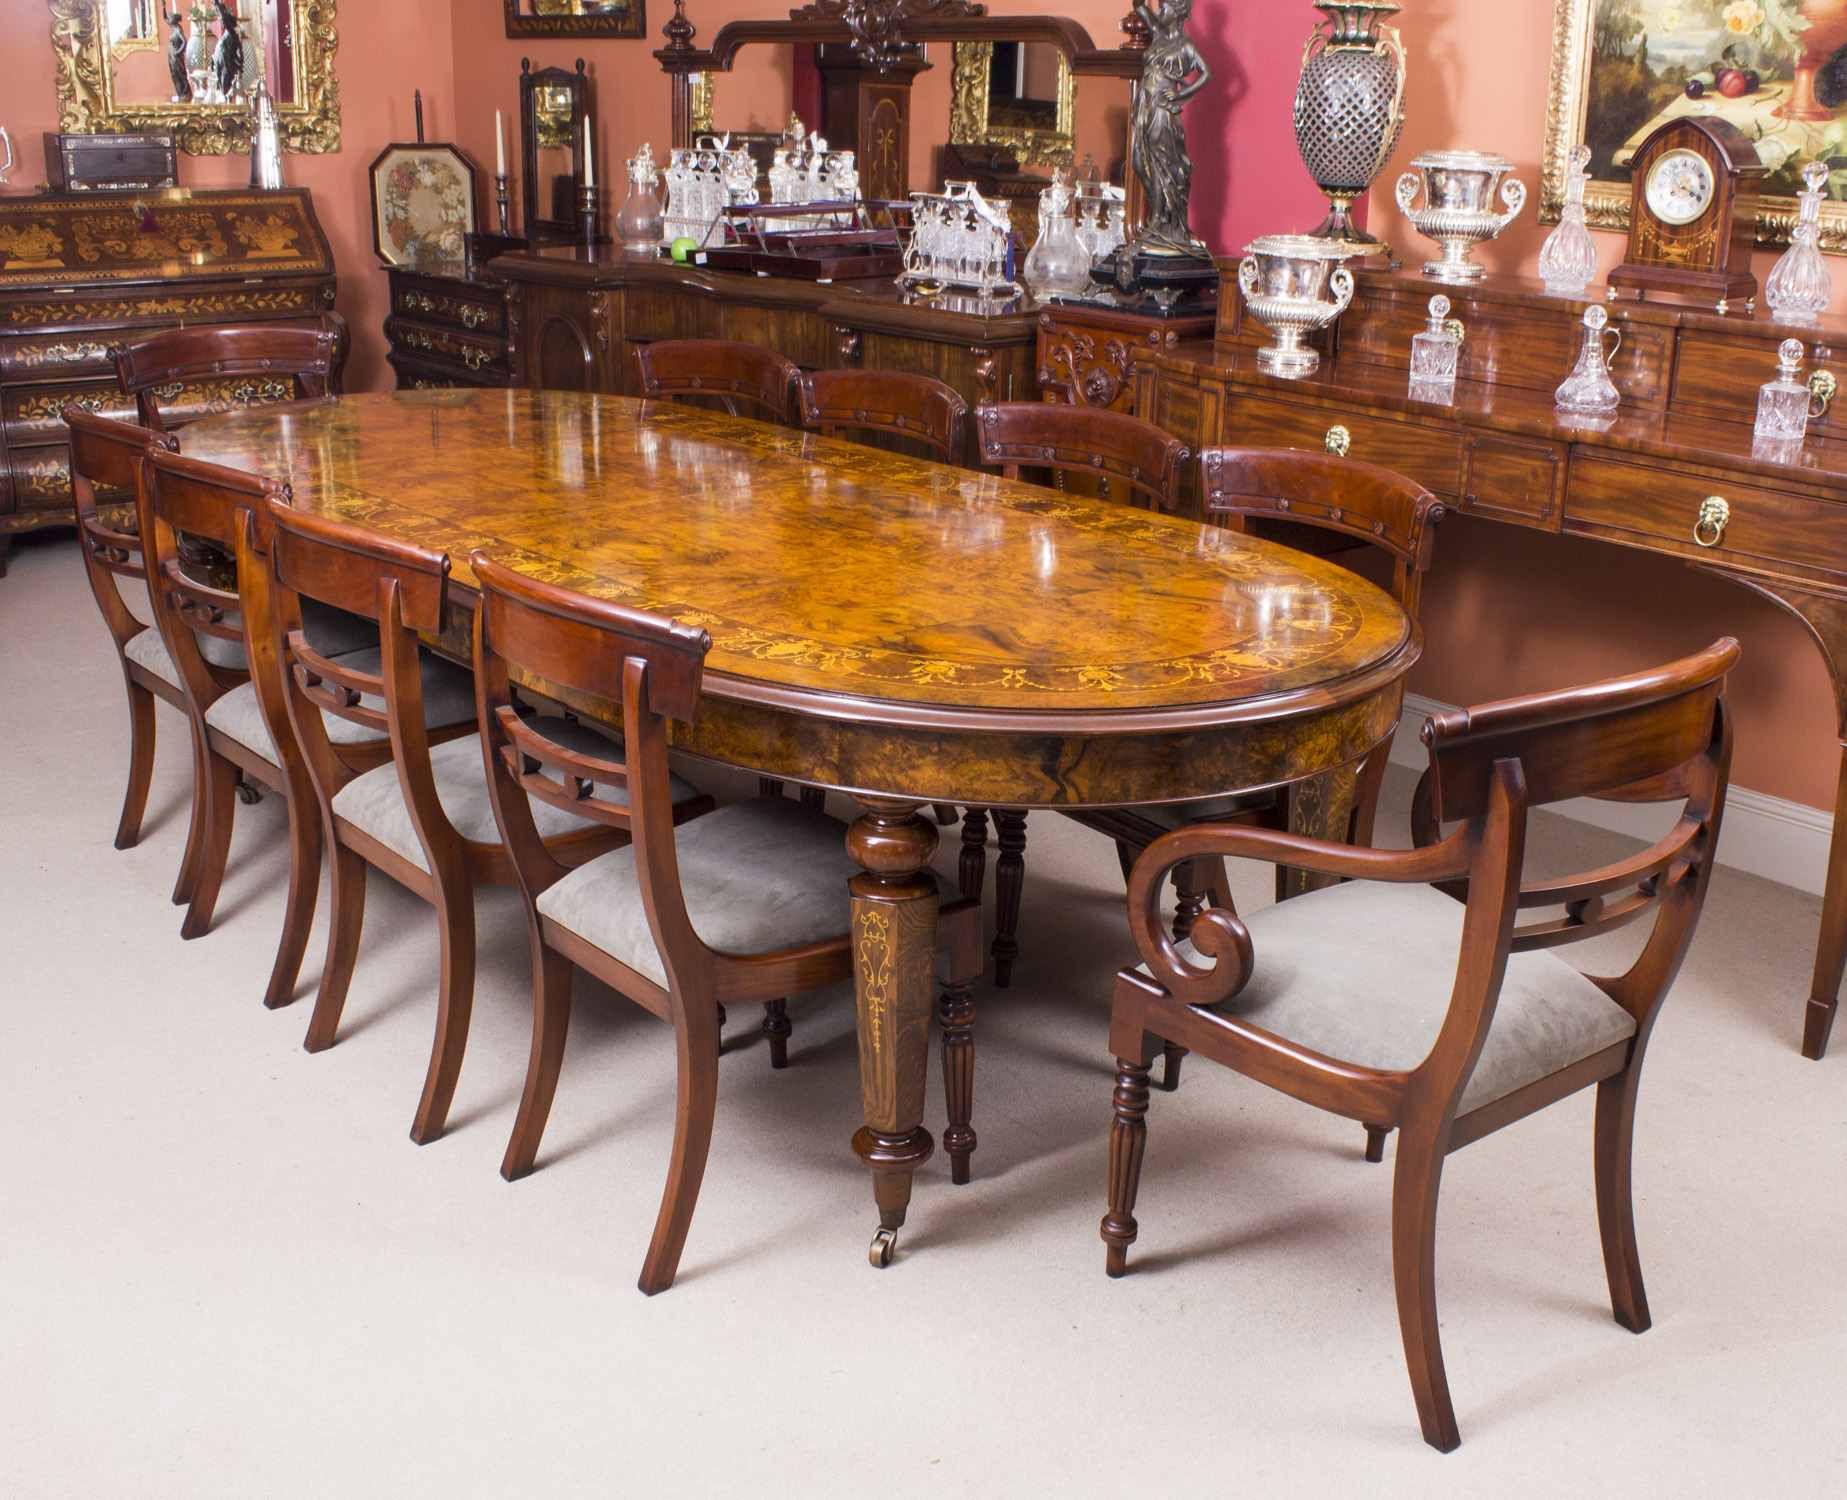 10 Superb Square Dining Table Ideas For A Contemporary: Large Bespoke Burr